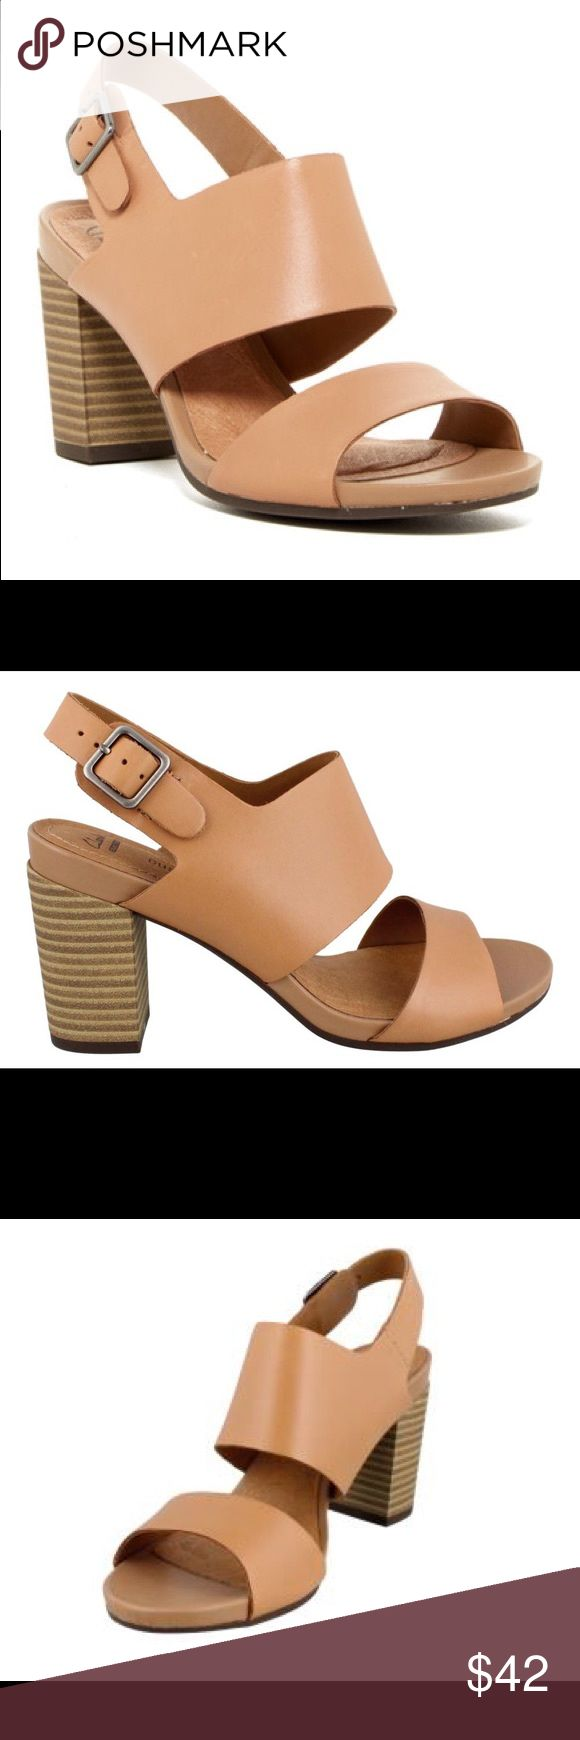 Clarks Banoy Tulia beige heeled sandals so comfy Warn twice Clarks Shoes